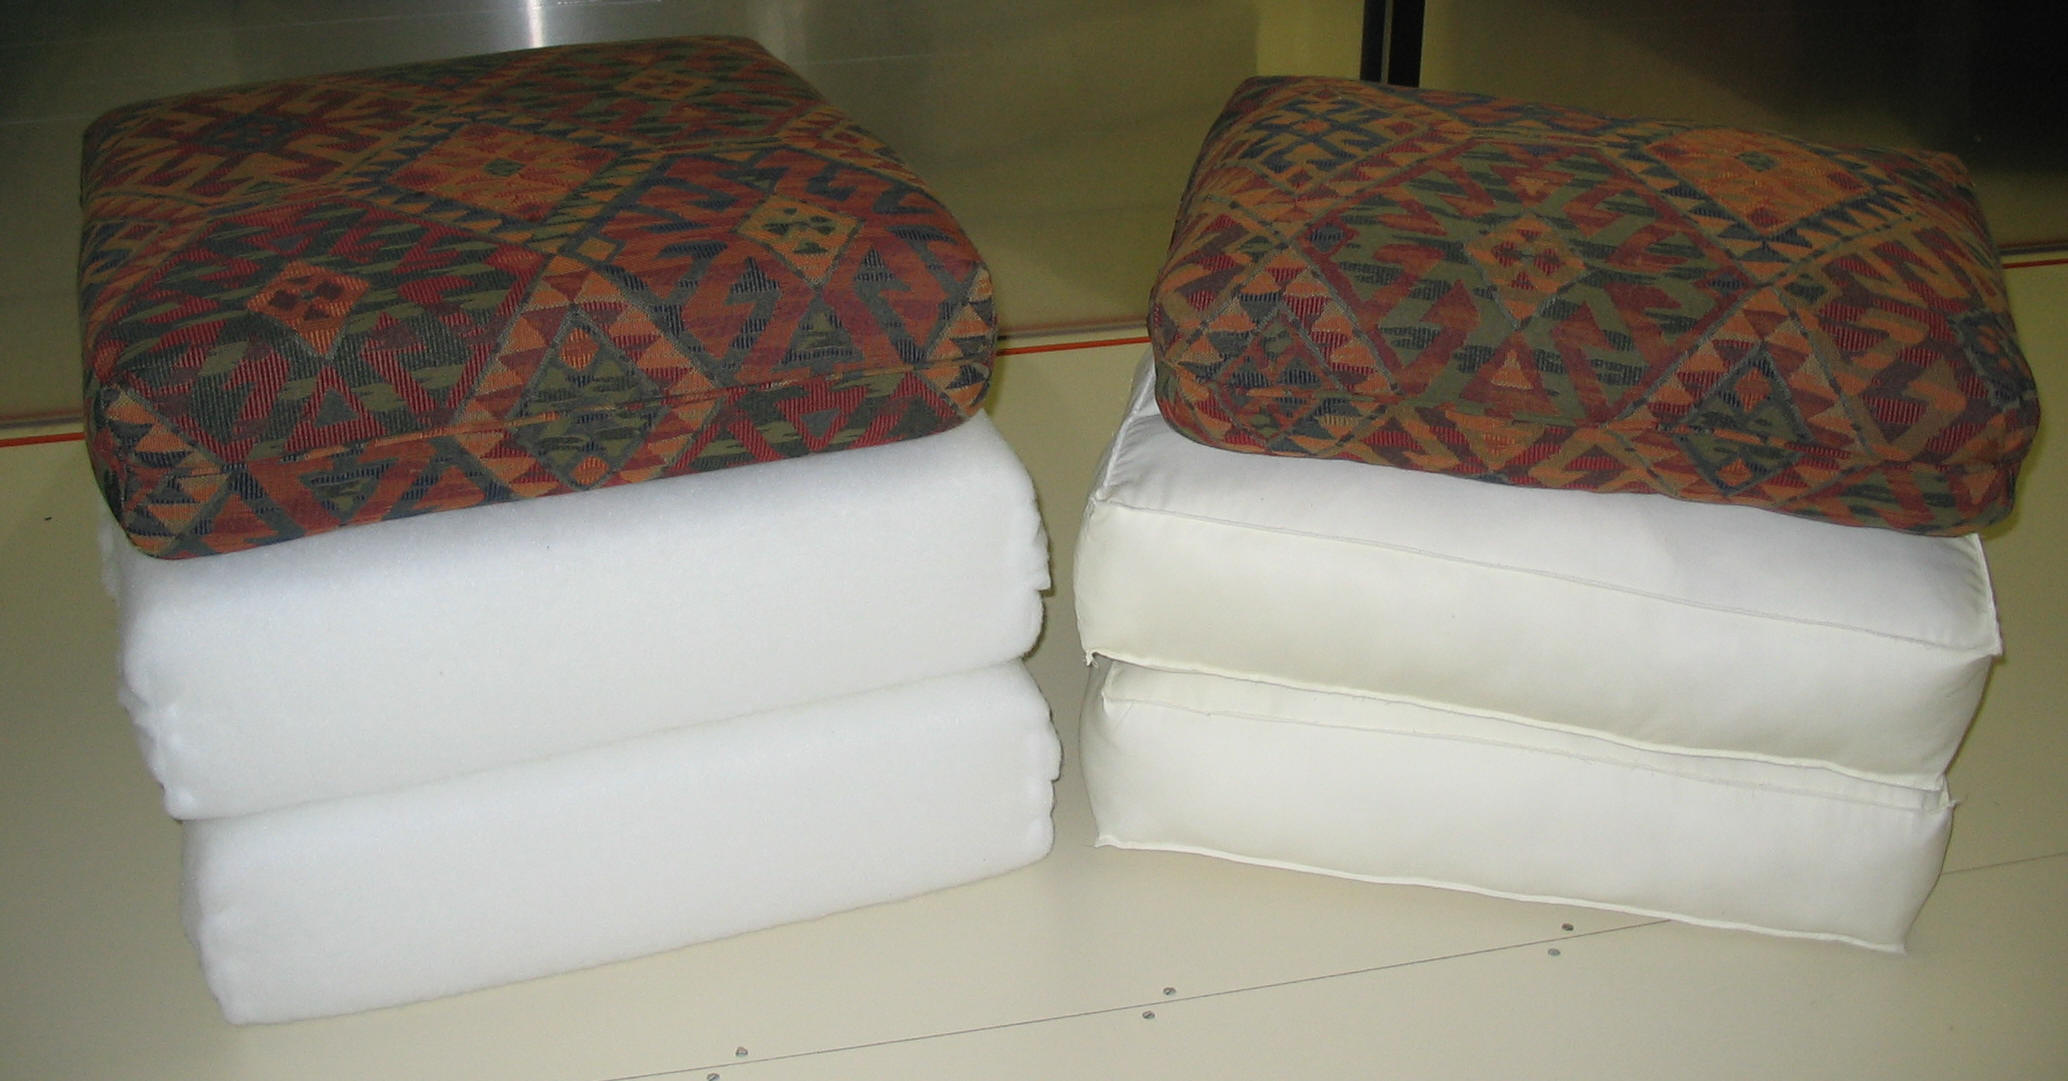 Restuff Cushions | Fix A Sagging Couch | Restuffing Couch Cushions